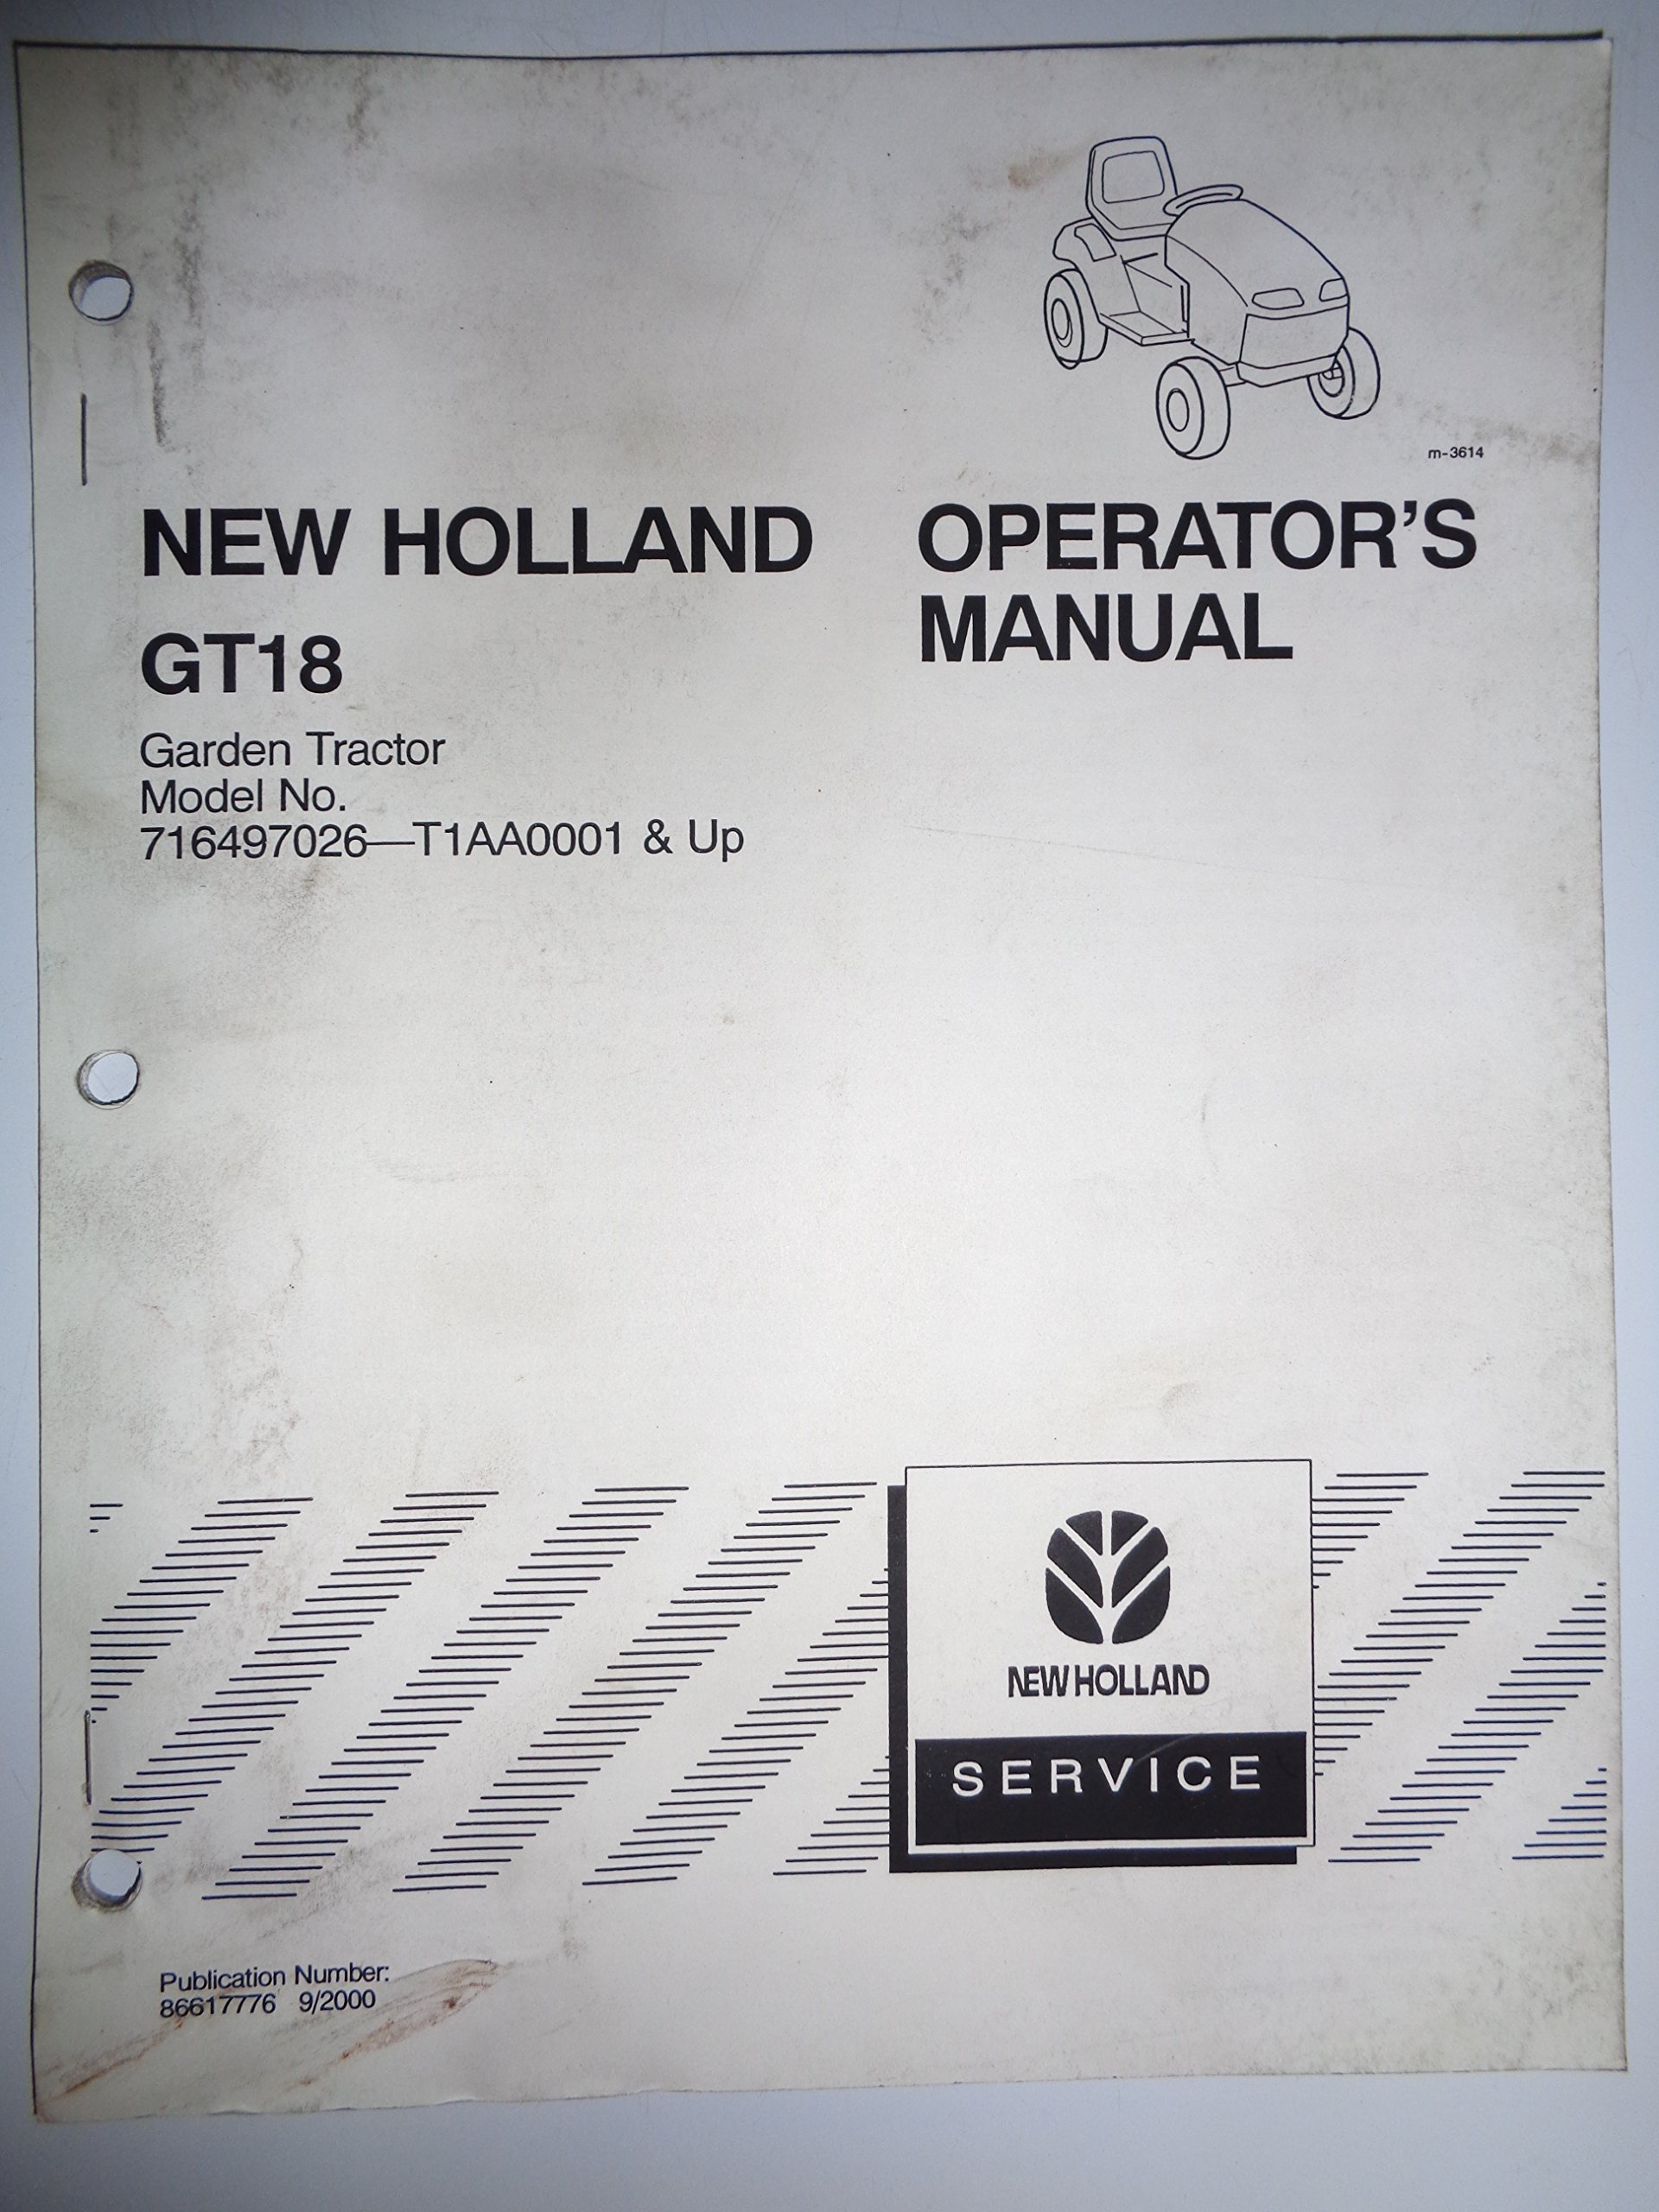 New Holland GT18 Model 716497026 Lawn Garden Tractor Operators Owners Manual  9/00: New Holland: Amazon.com: Books